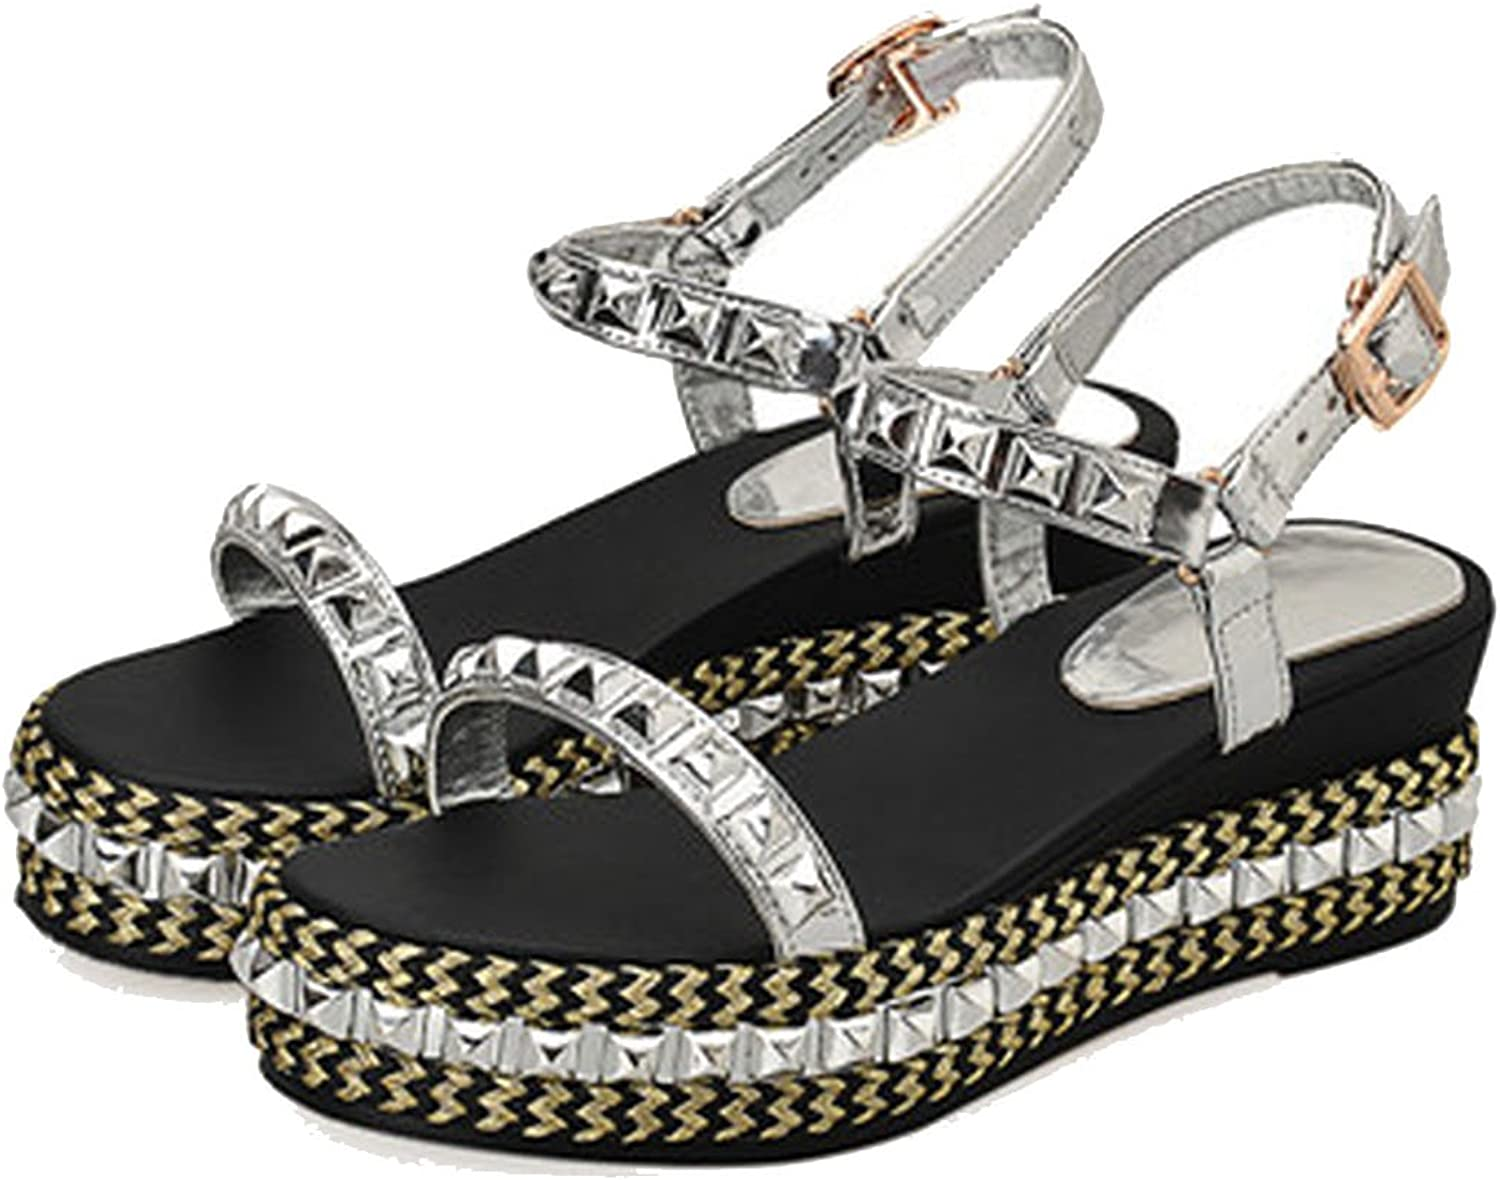 Patent Leather Rivet Sandals Flat Platform with Shining Straw shoes Buckle Strap Casual shoes